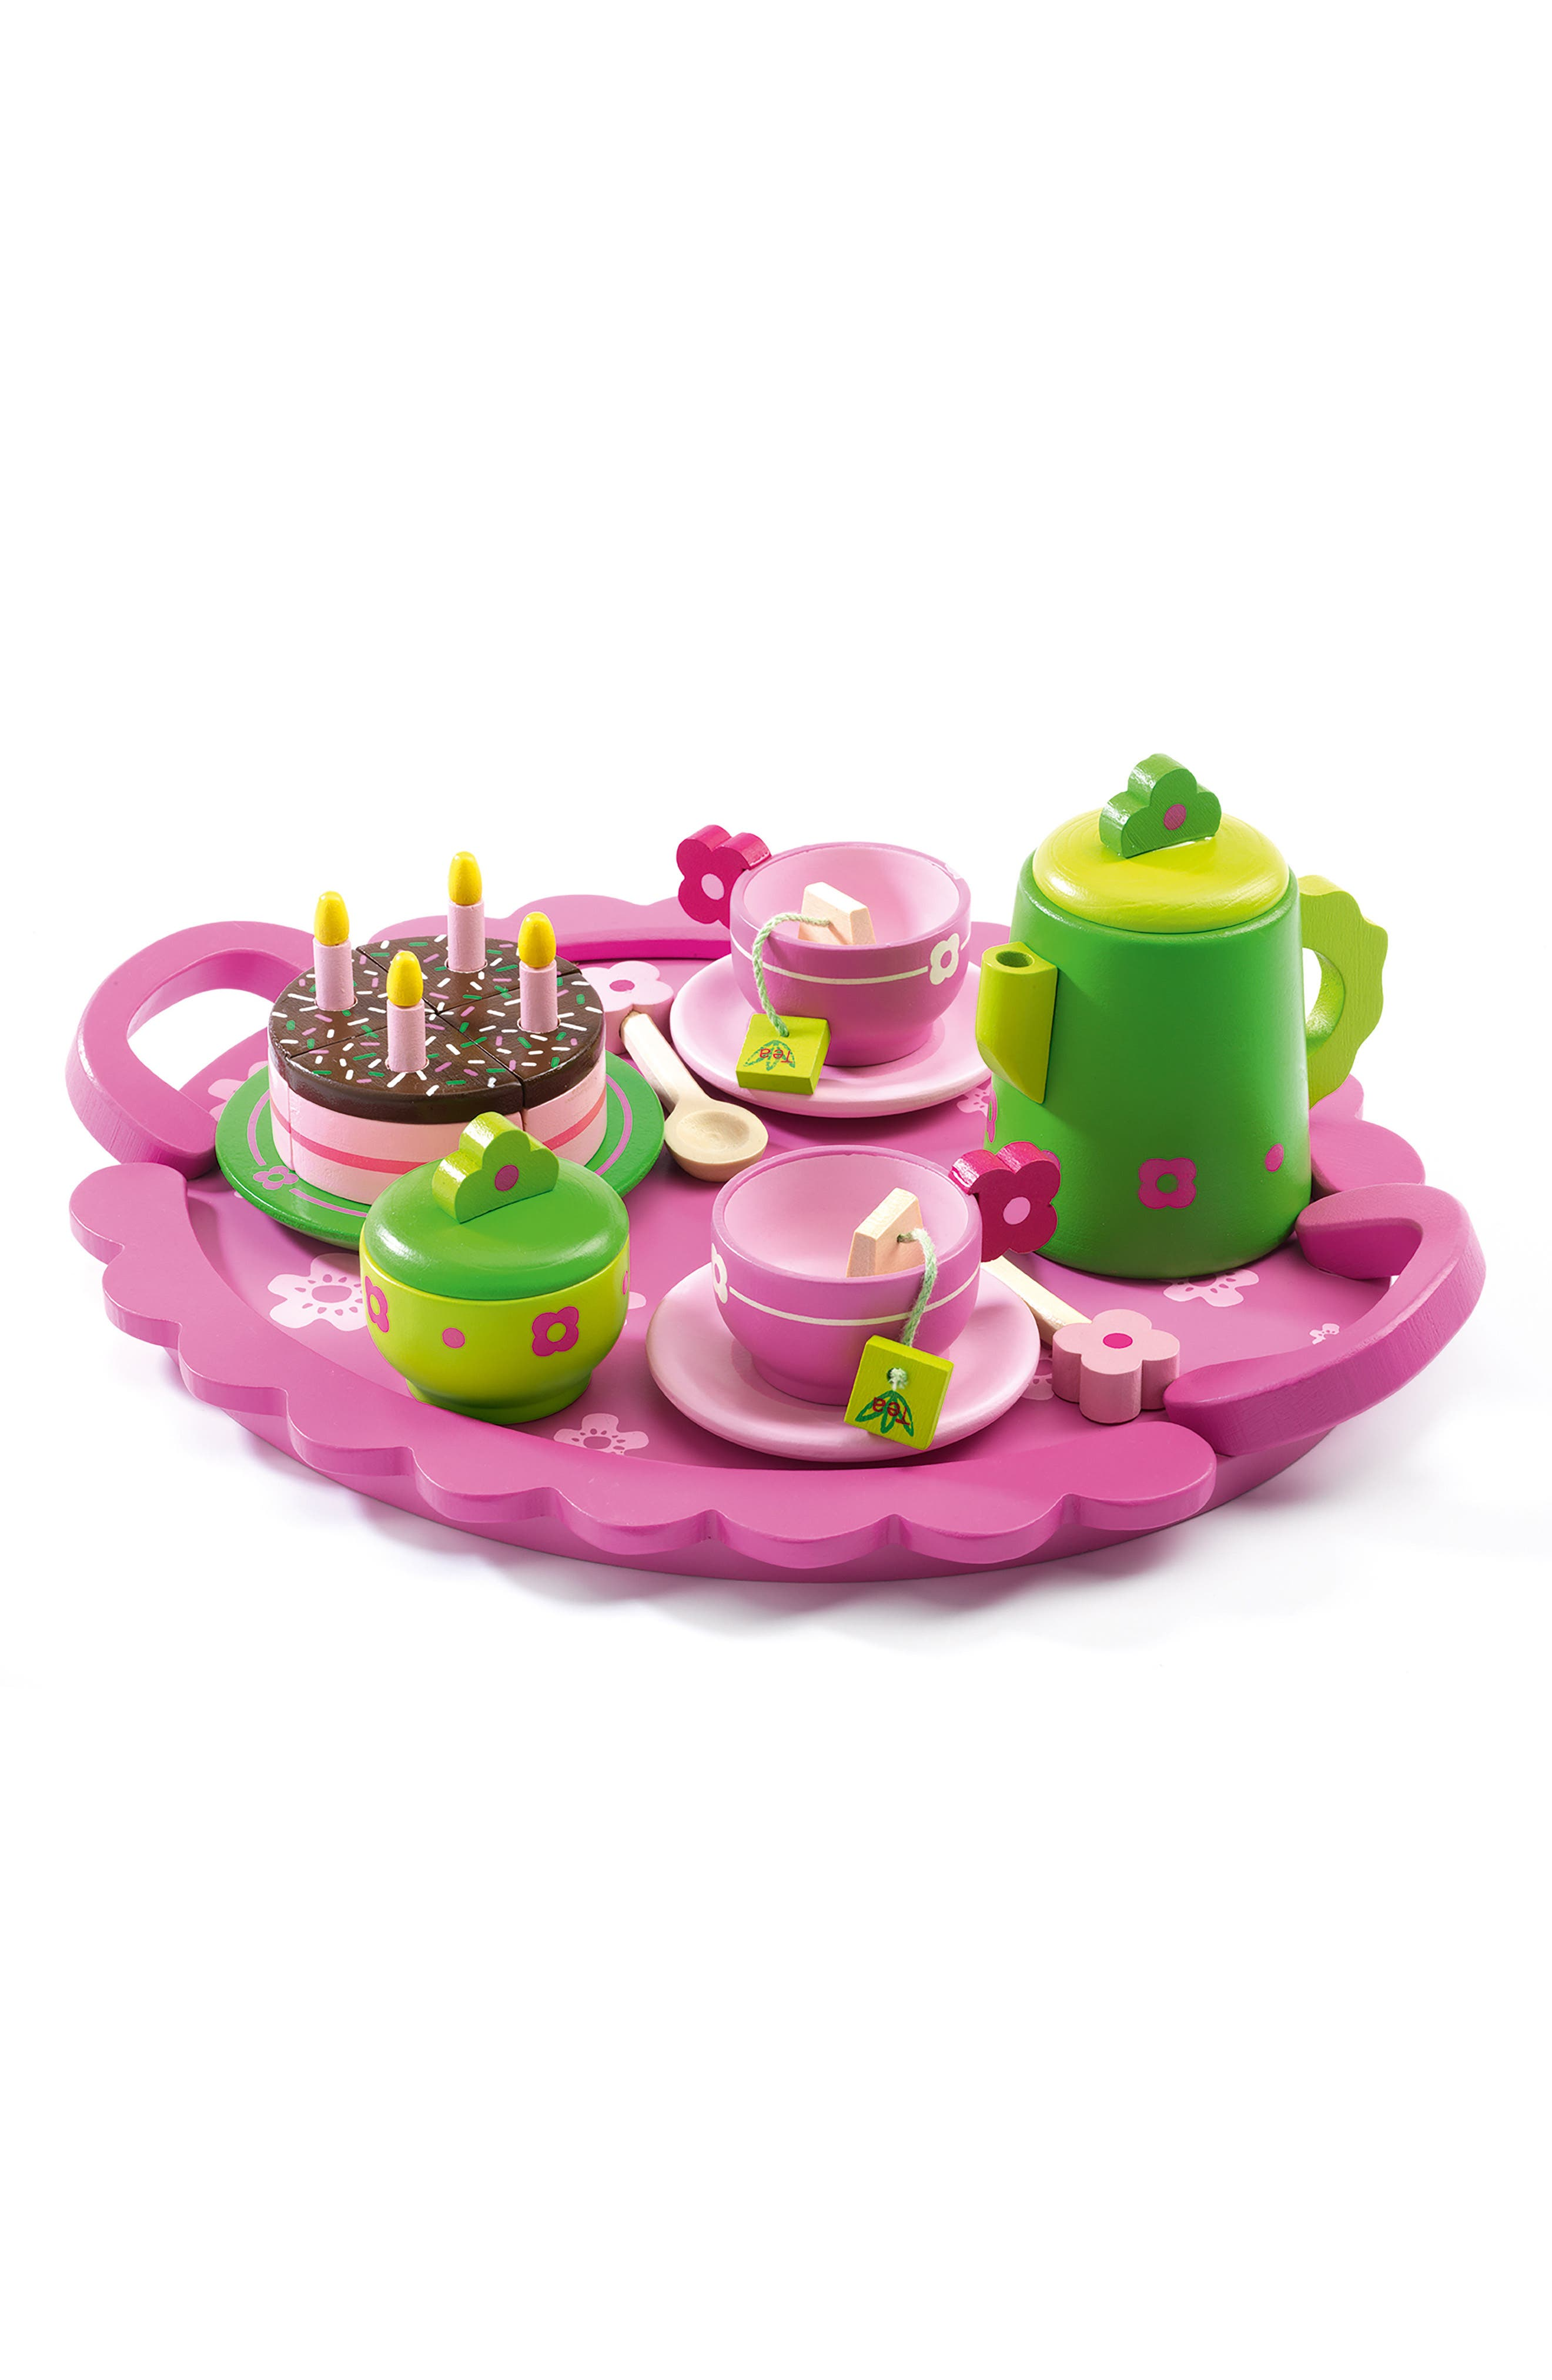 Djeco Birthday Party Wooden Tea Set